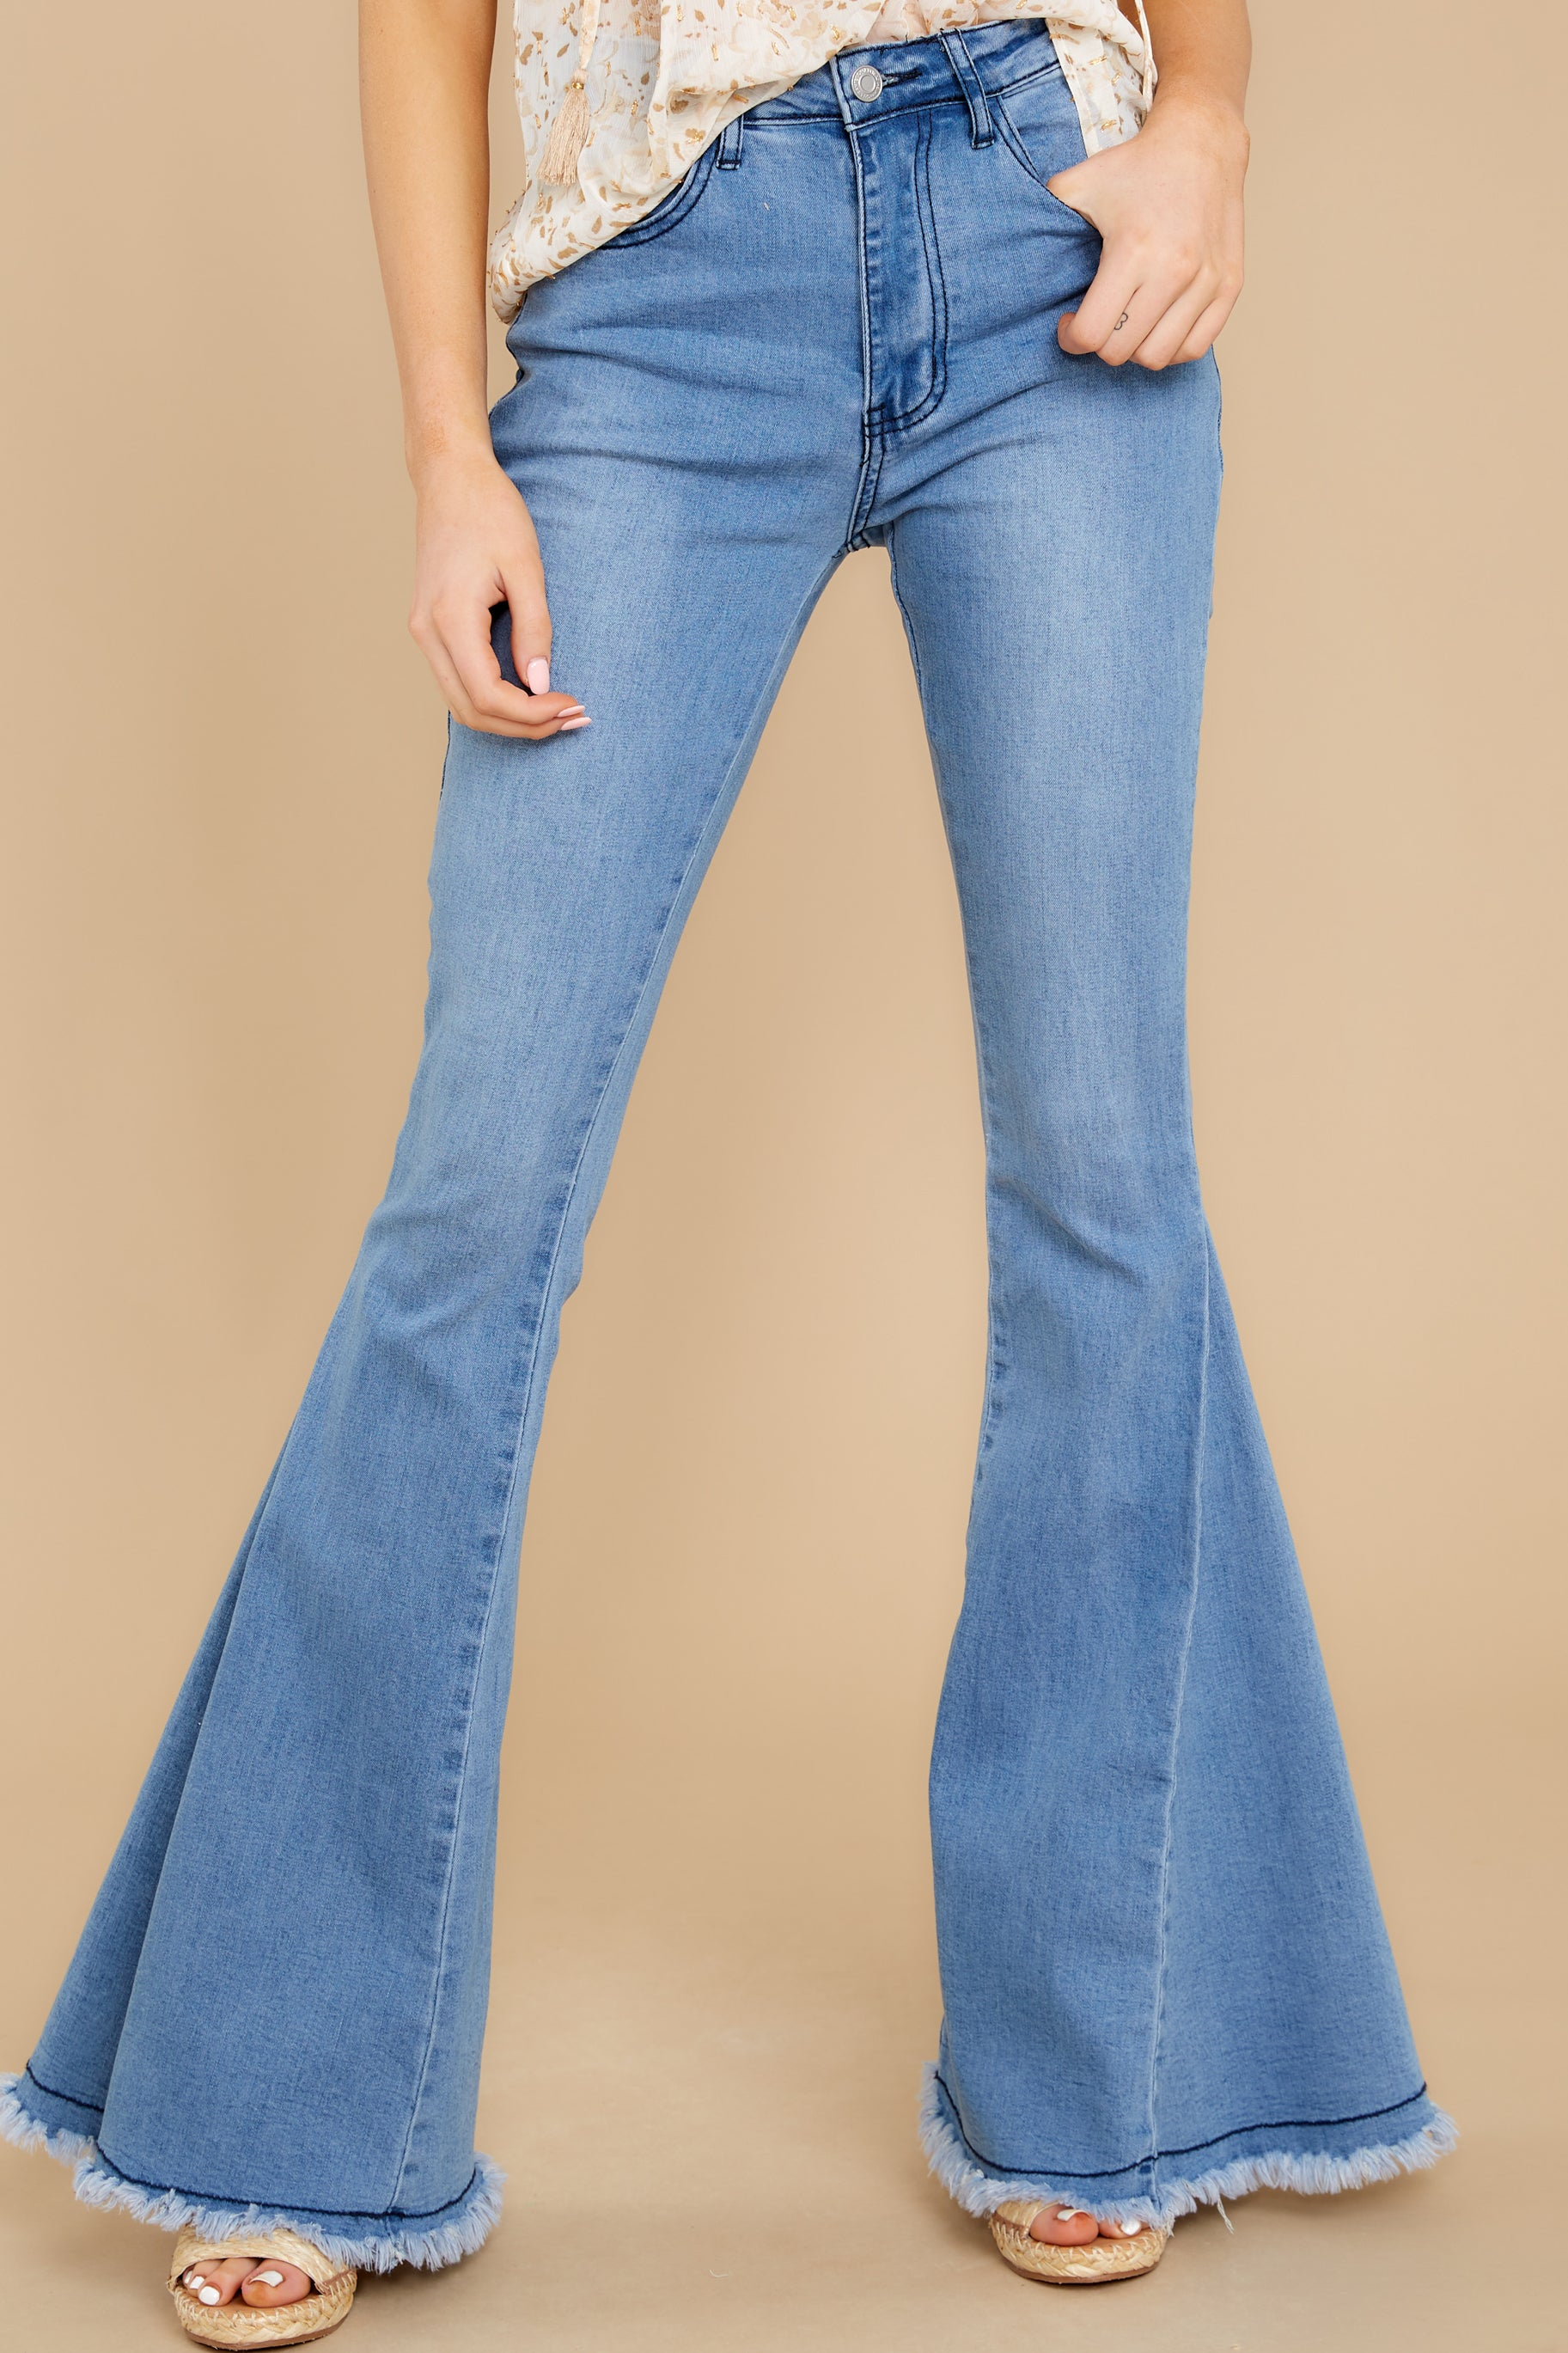 Vintage High Waisted Trousers, Sailor Pants, Jeans Everyday Yes Light Wash Flare Jeans Blue $52.00 AT vintagedancer.com